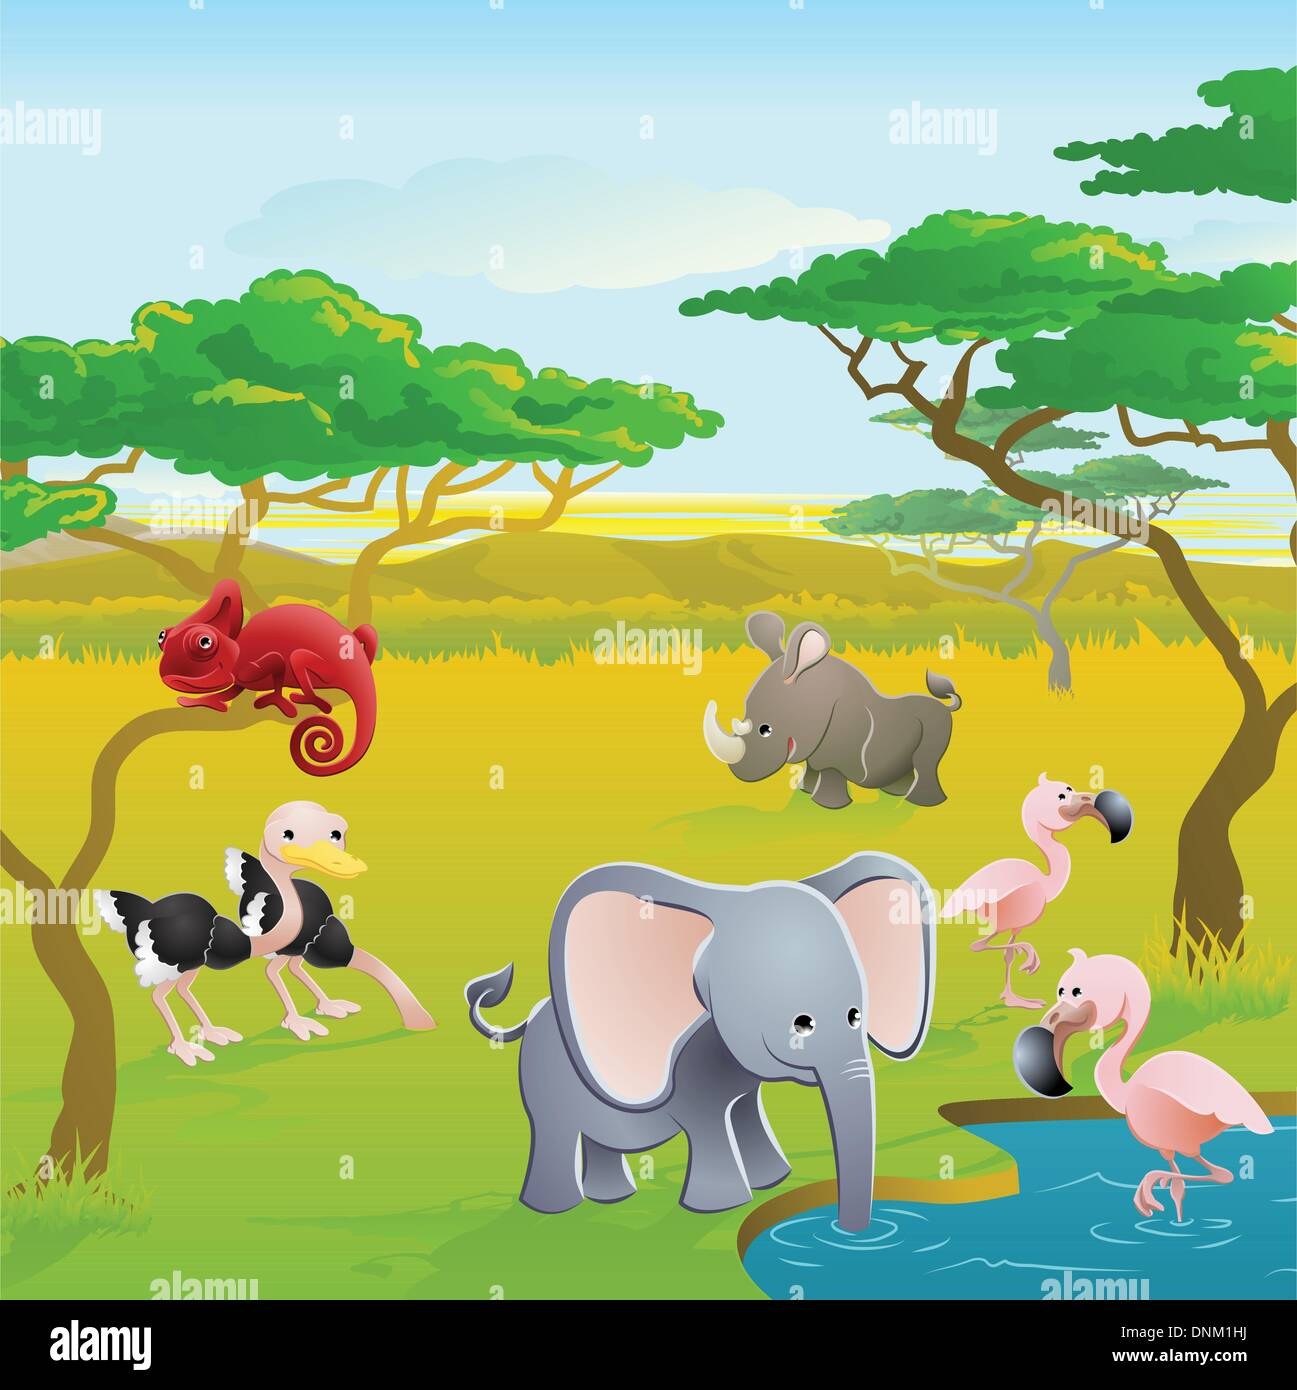 Cute African Safari Animal Cartoon Characters Scene Series Of Three Illustrations That Can Be Used Separately Or Side By Side T Stock Vector Image Art Alamy